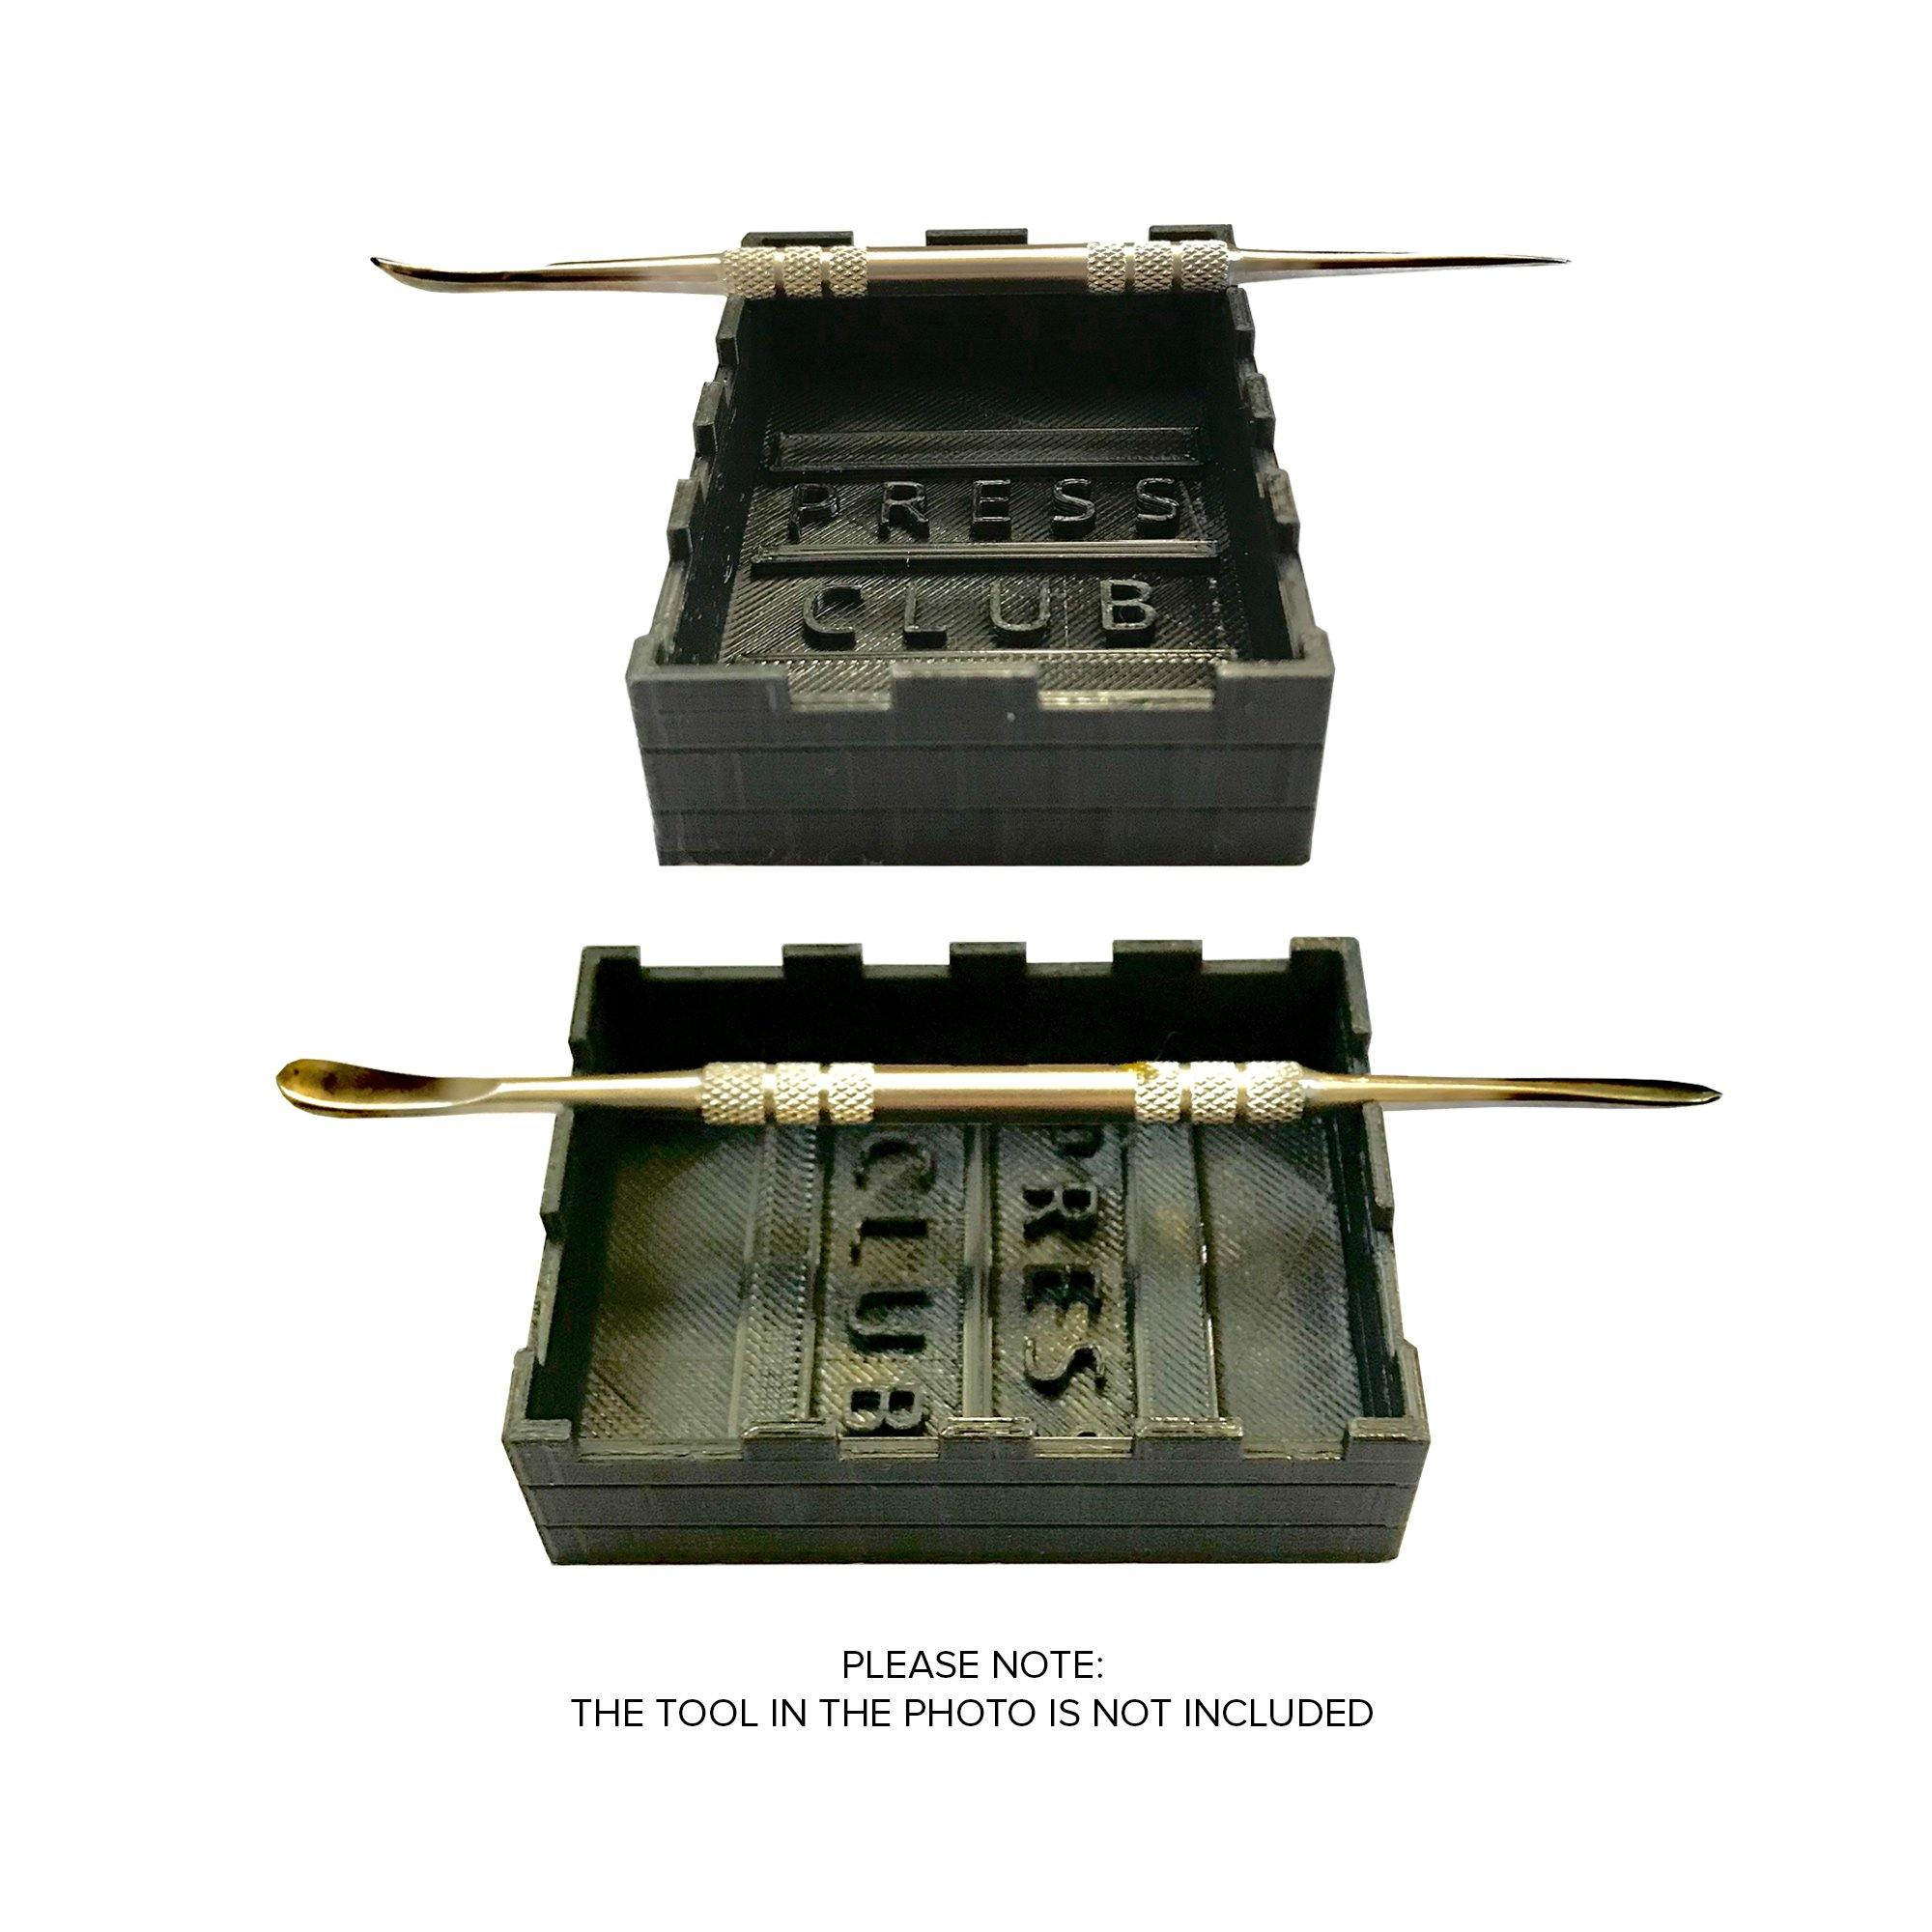 TOOL HOLDER - The Press Club